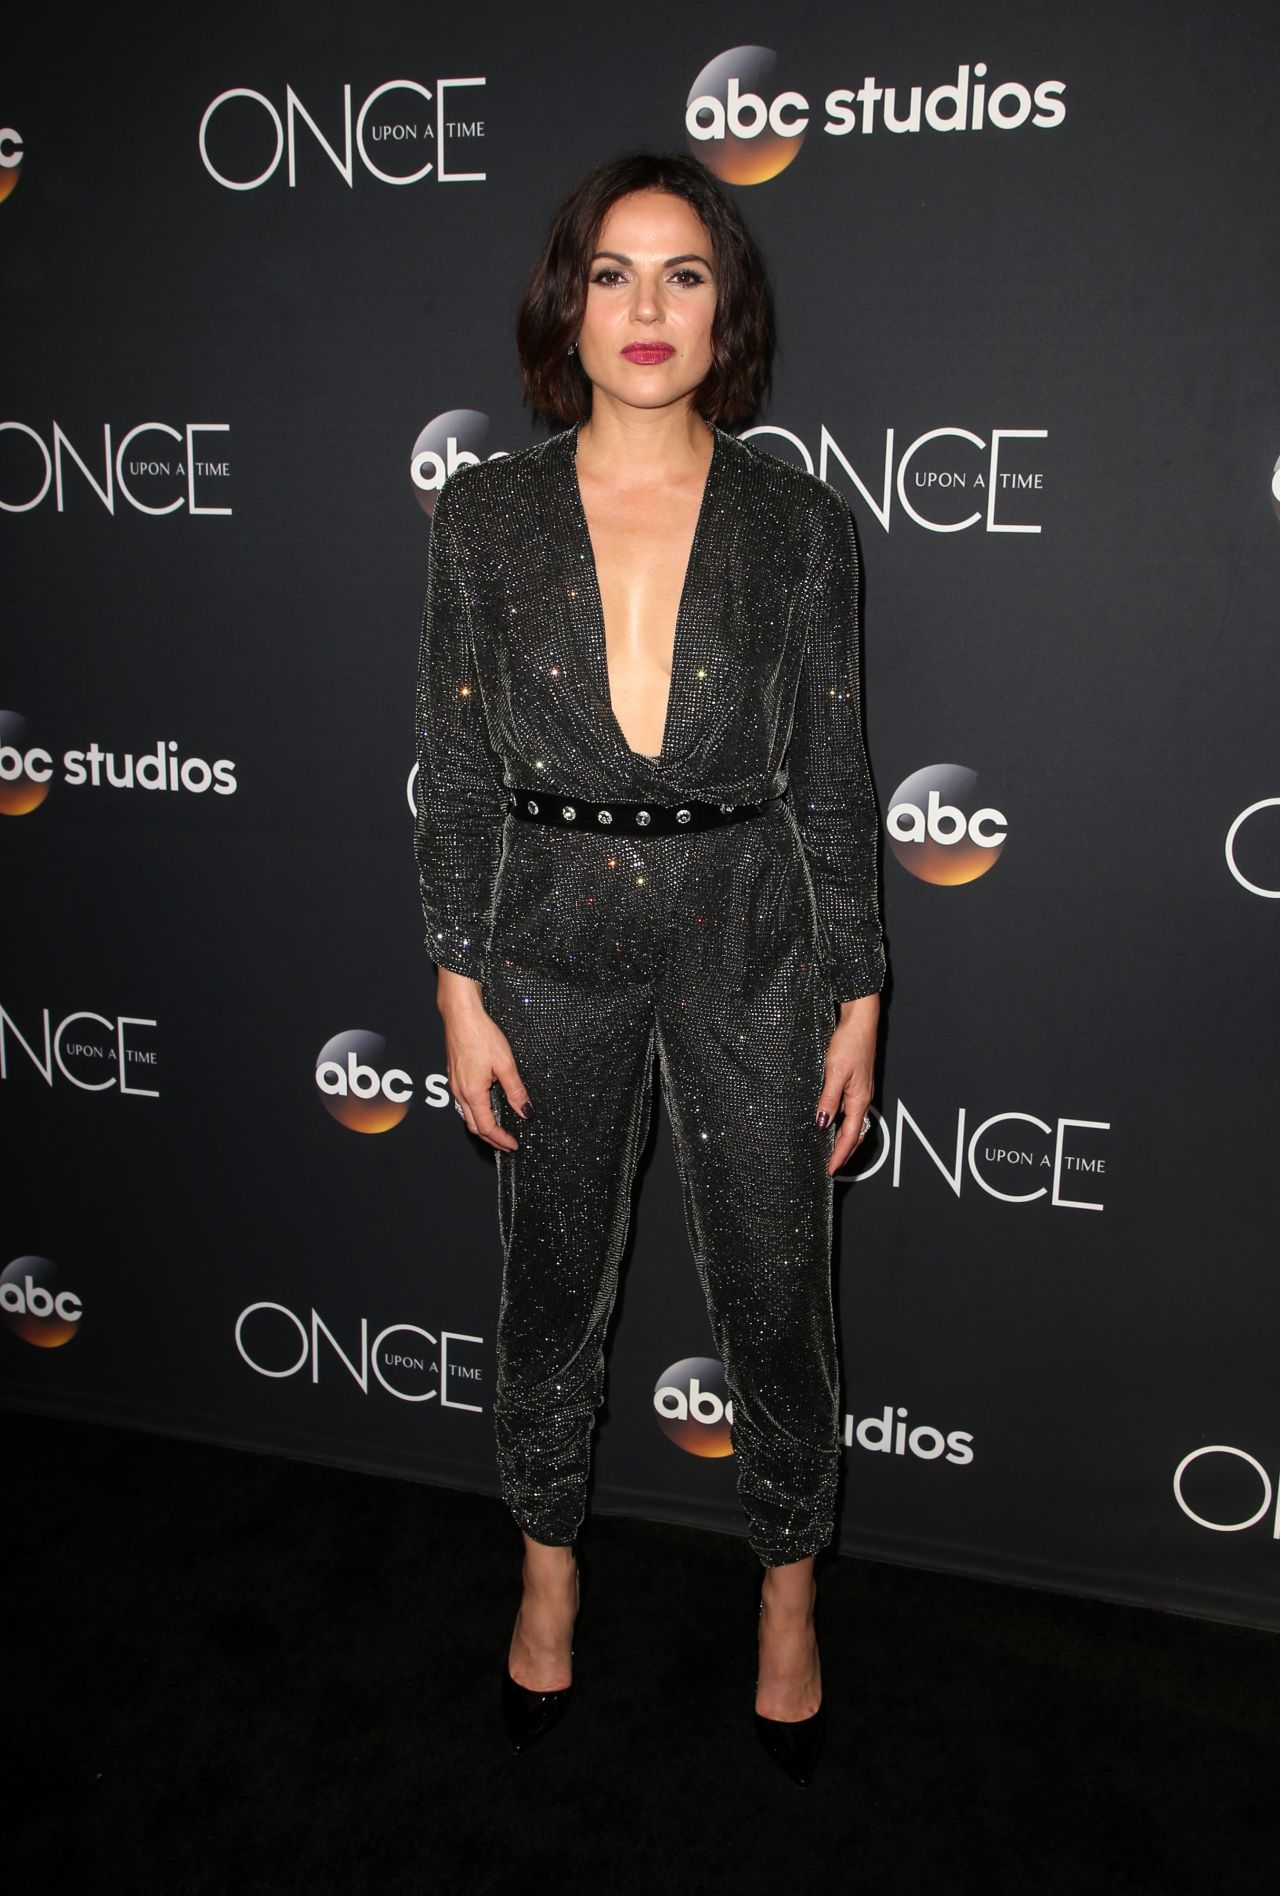 http://celebmafia.com/wp-content/uploads/2018/05/lana-parrilla-once-upon-a-time-finale-screening-in-la-05-08-2018-9.jpg